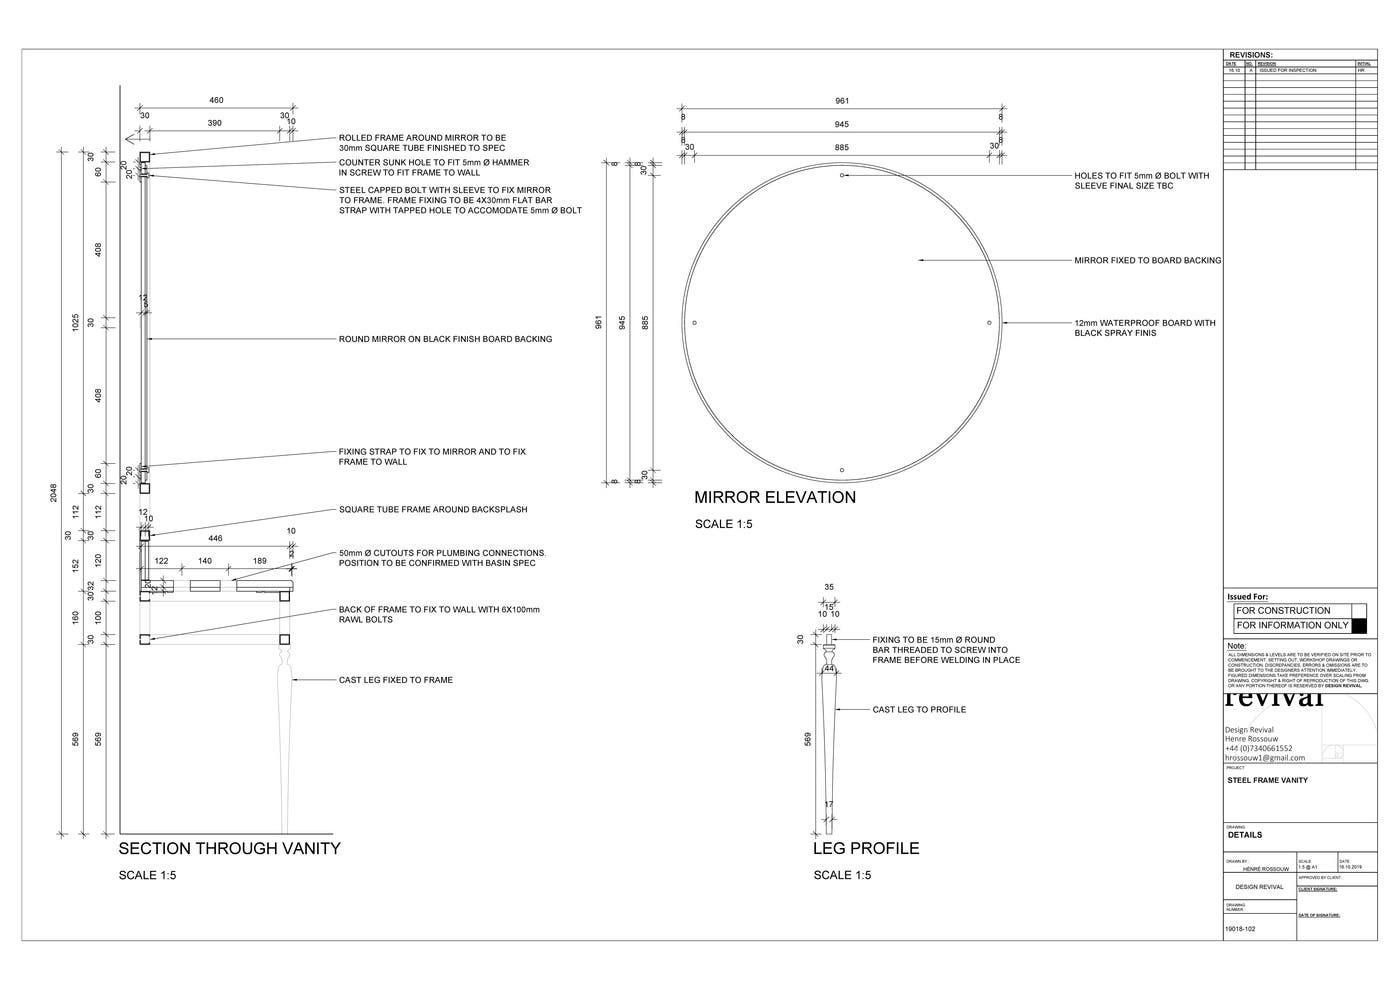 tube-details-page-003.jpg